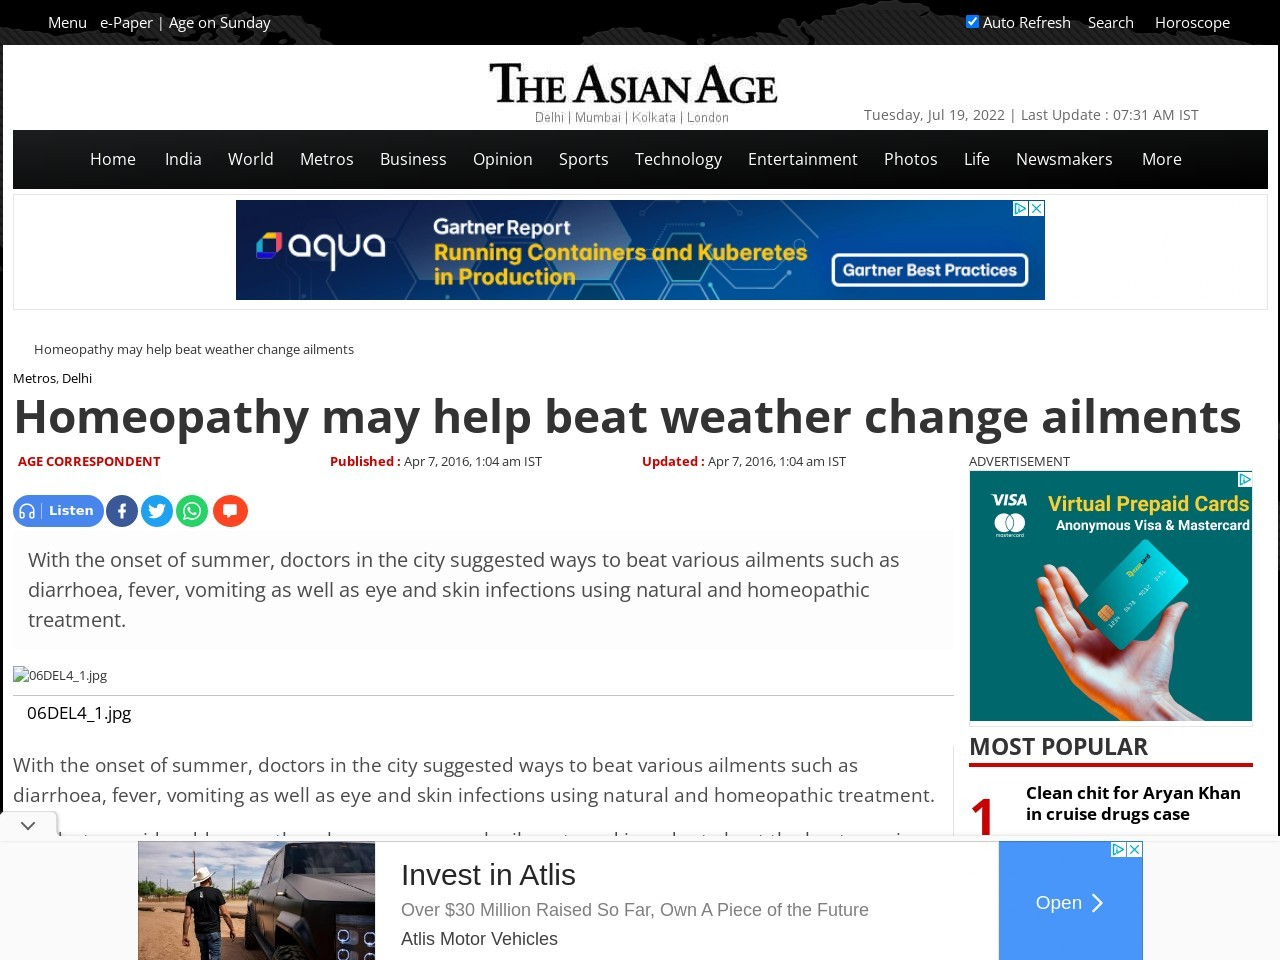 Homeopathy may help beat weather change ailments